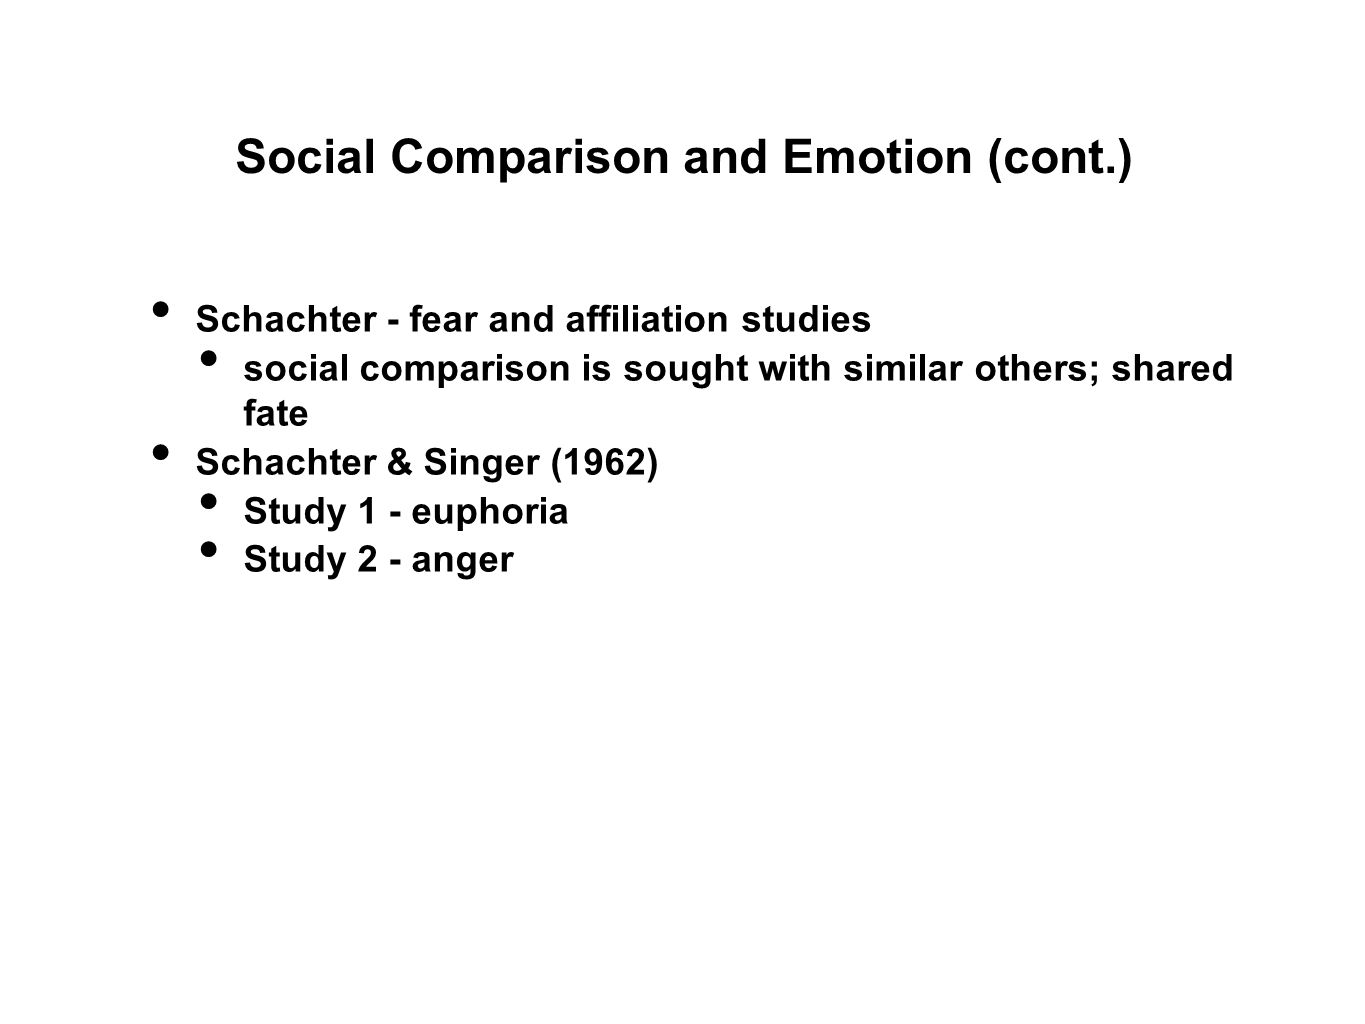 Schachter - fear and affiliation studies social comparison is sought with similar others; shared fate Schachter & Singer (1962) Study 1 - euphoria Study 2 - anger Social Comparison and Emotion (cont.)